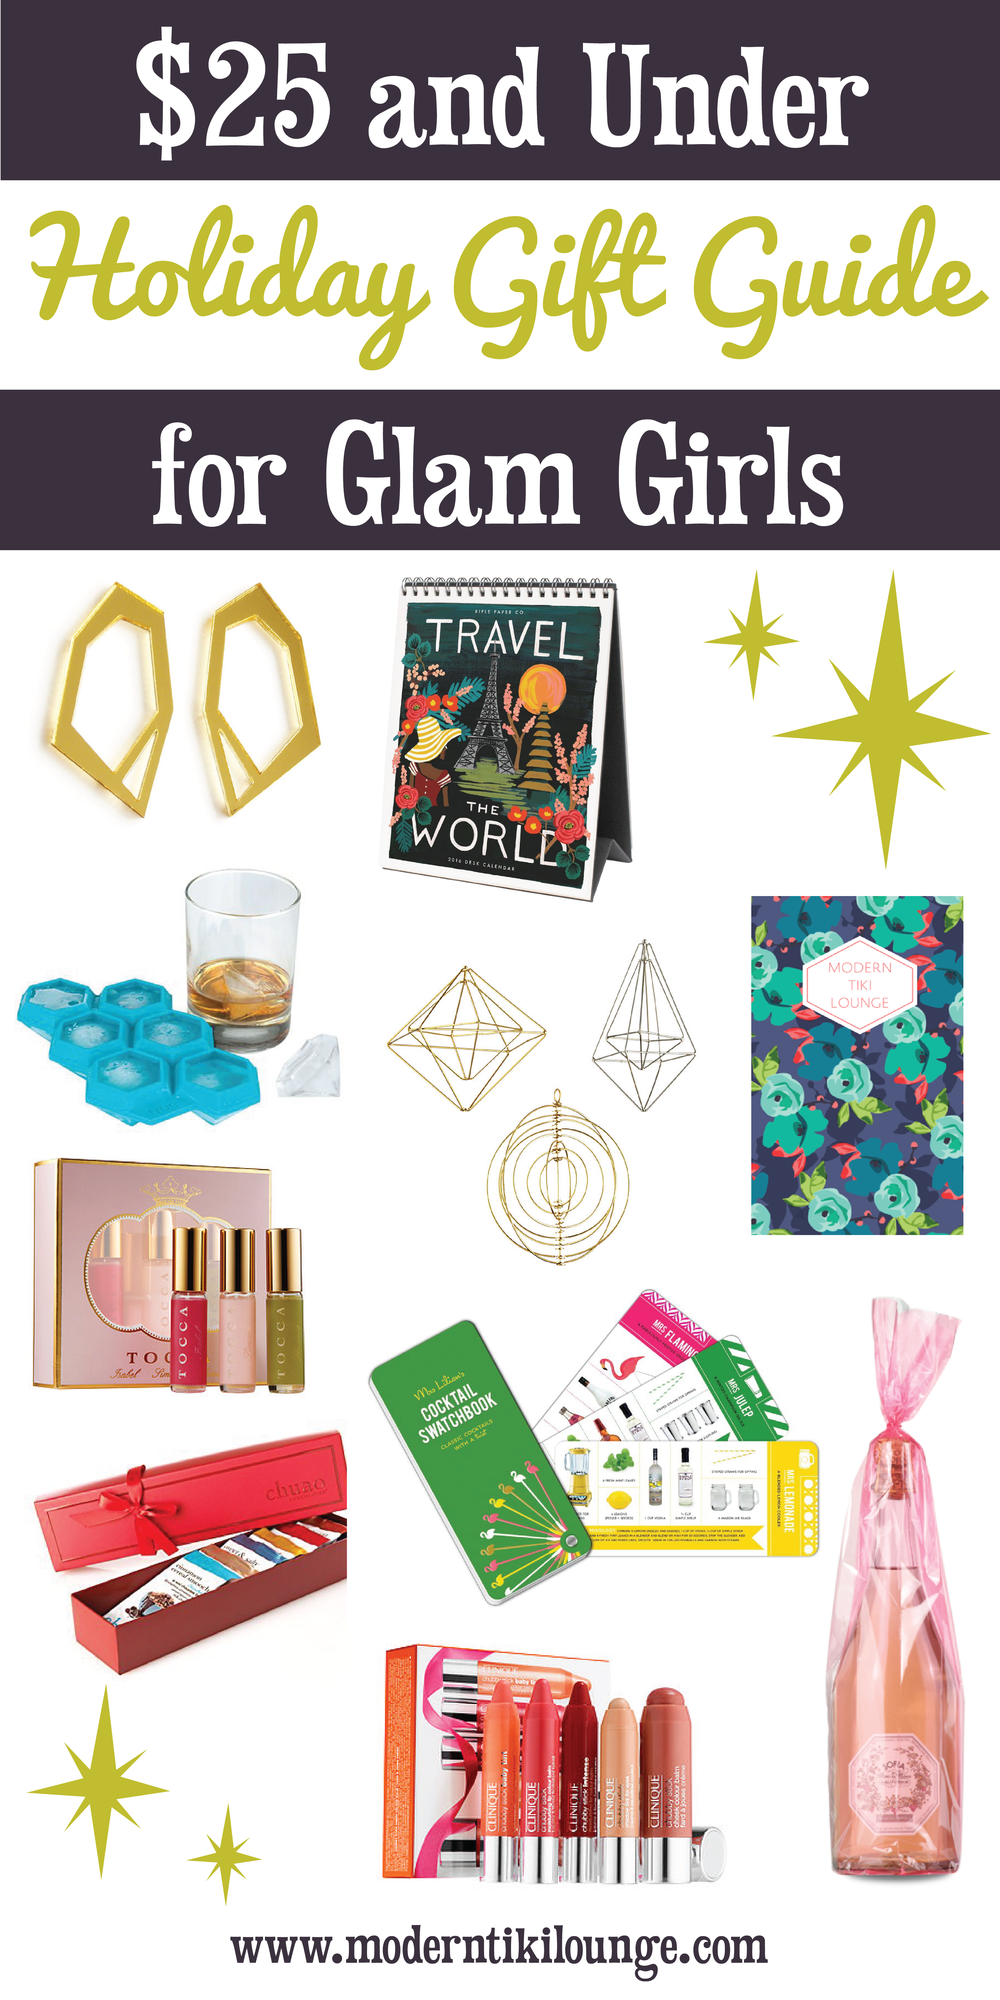 holiday-gift-guide-for-glam-girls.jpg